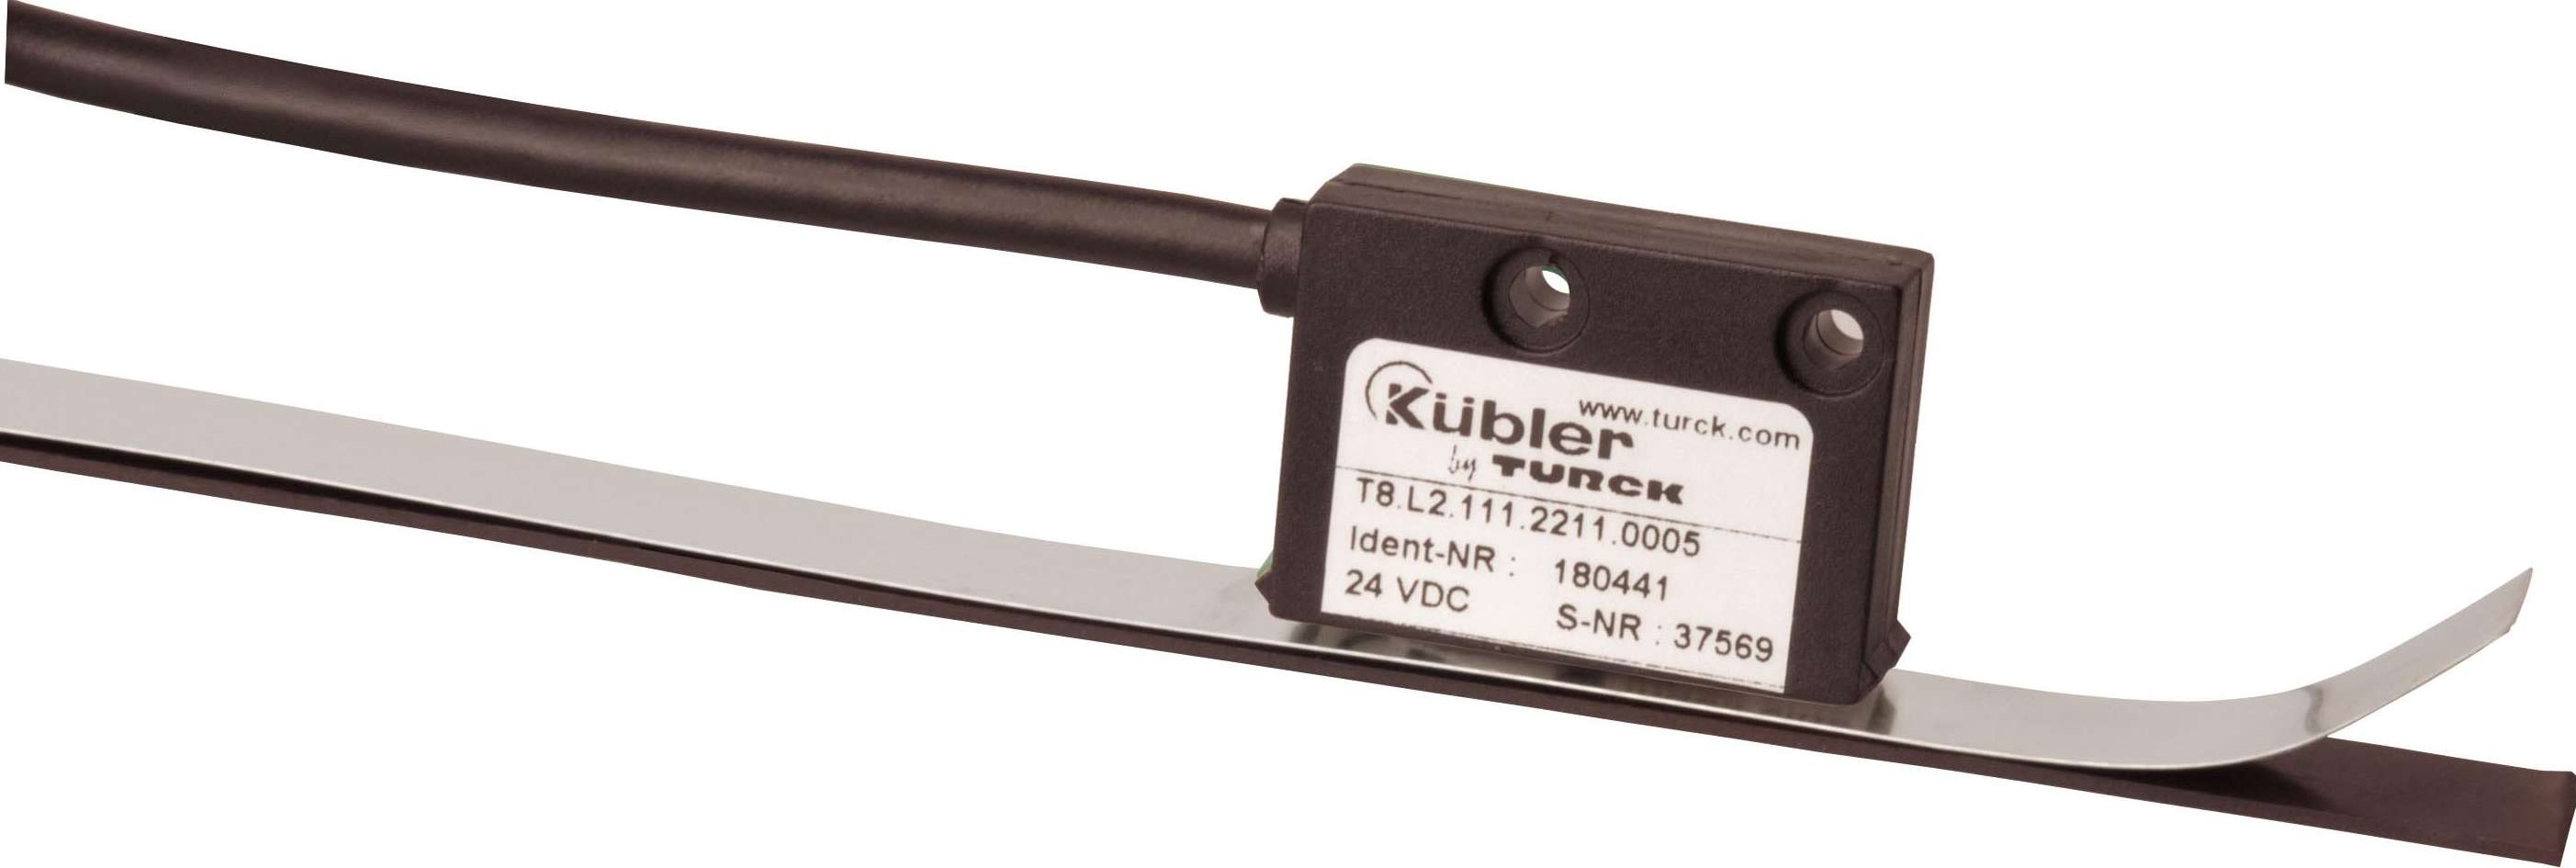 Linear Measuring Devices : Introducing kübler by turck s new linear measurement system